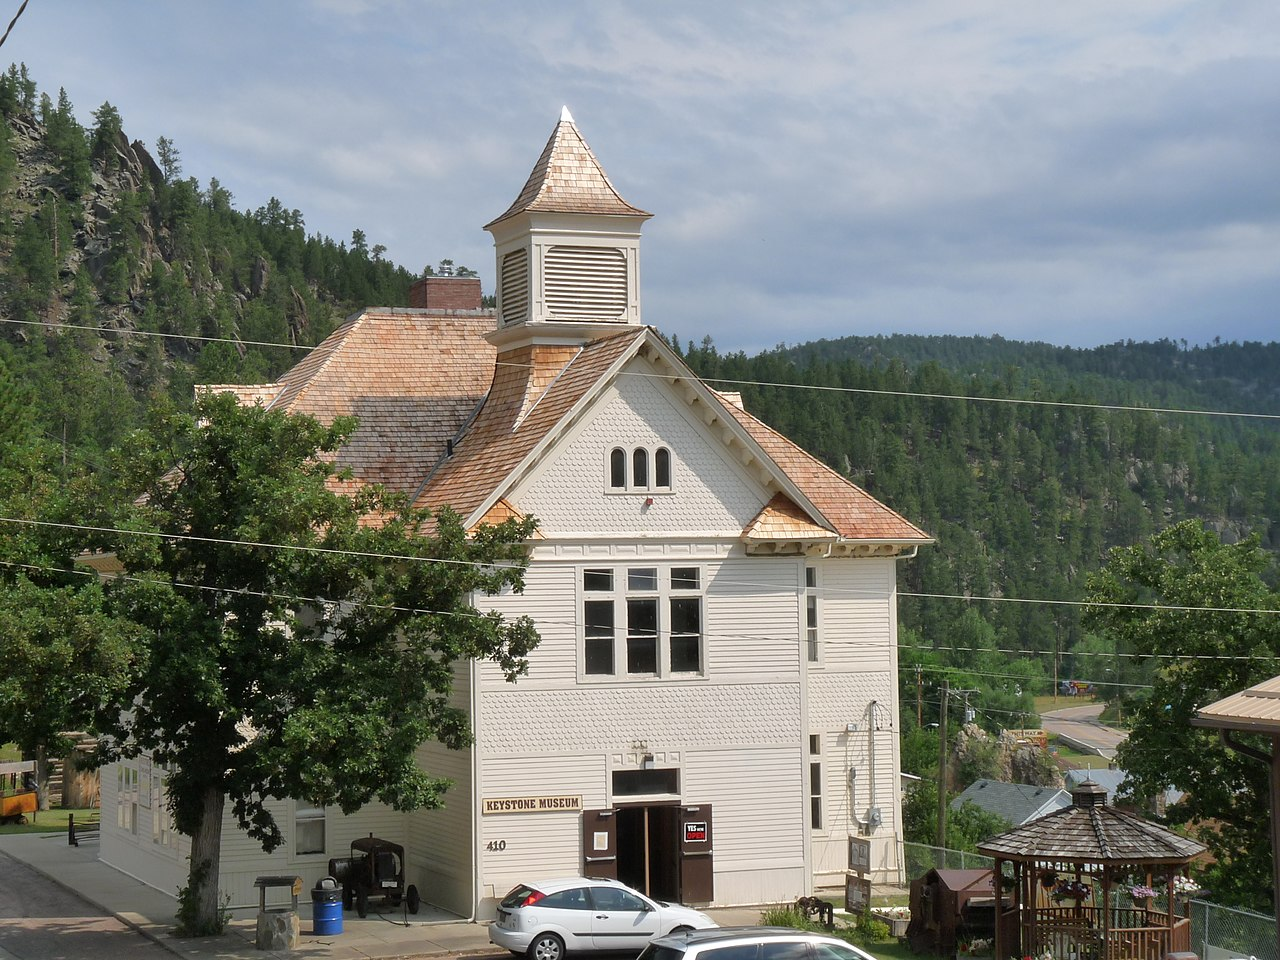 Keystone Historical Museum was built in 1899 and operated as a local school until 1988.